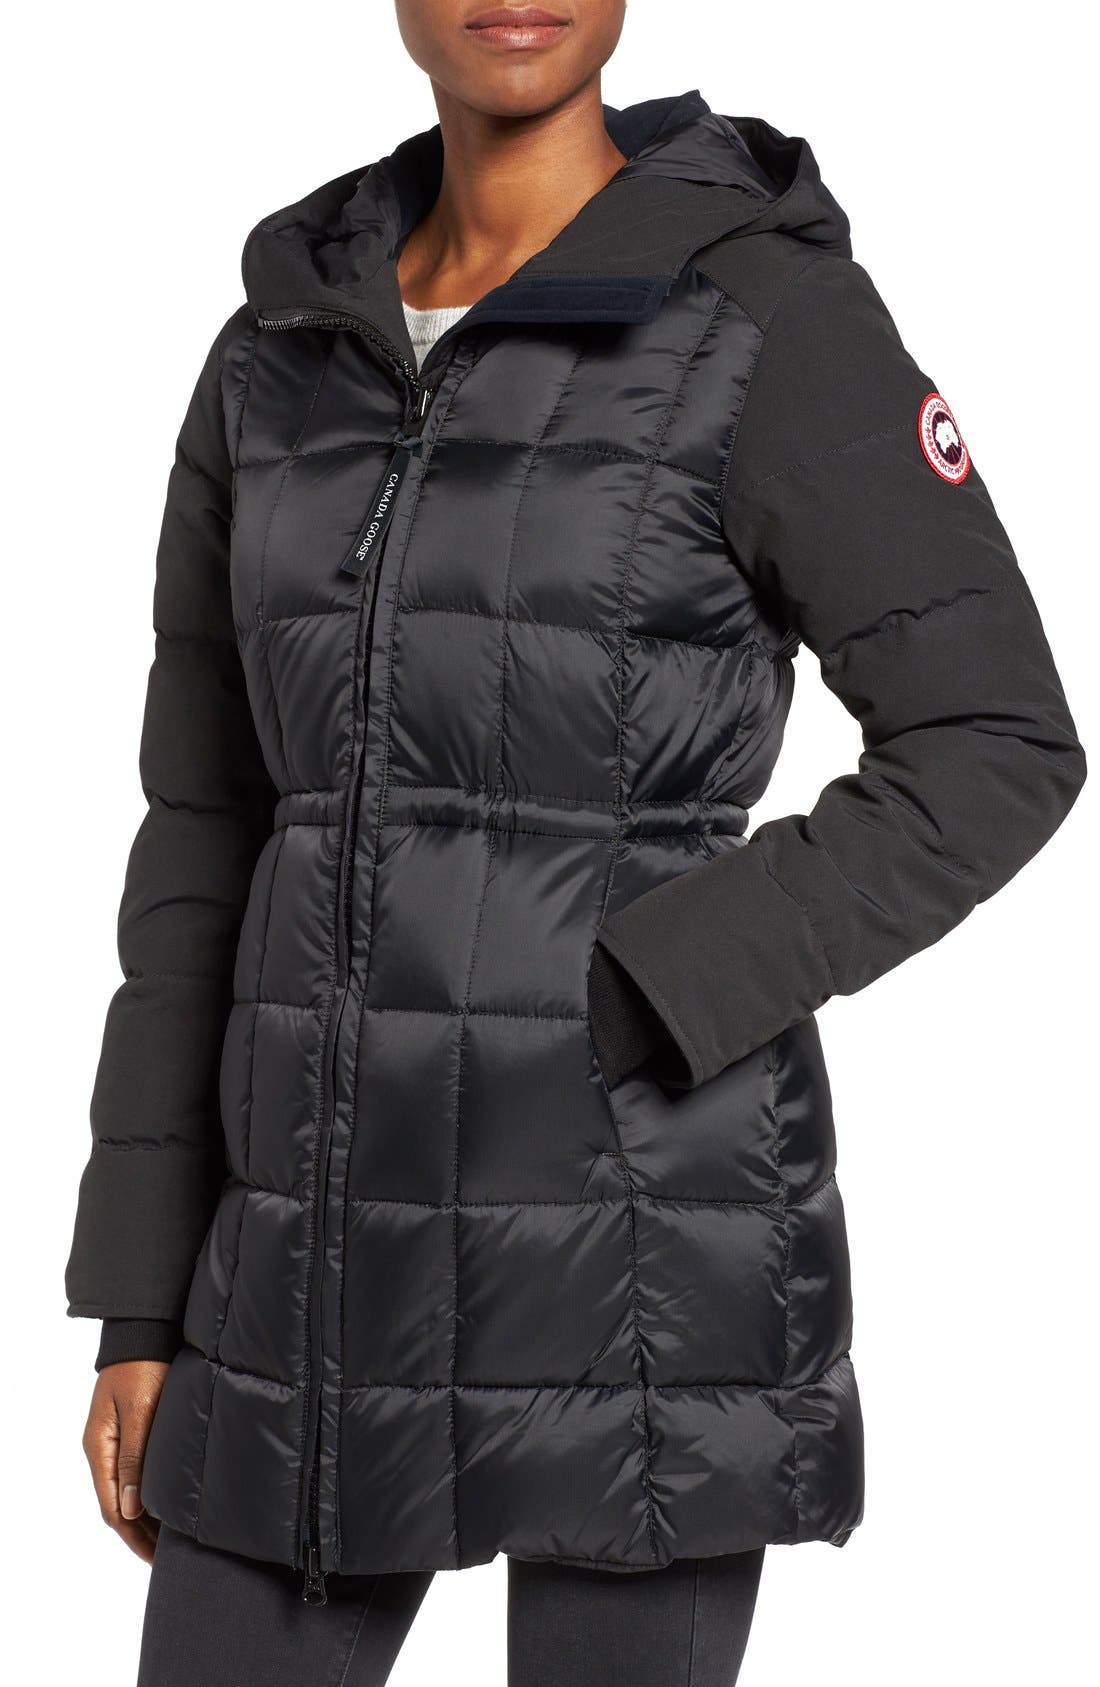 CANADA GOOSE, Beechwood Down Parka with Genuine Coyote Fur Trim, Alternate thumbnail 2, color, BLACK